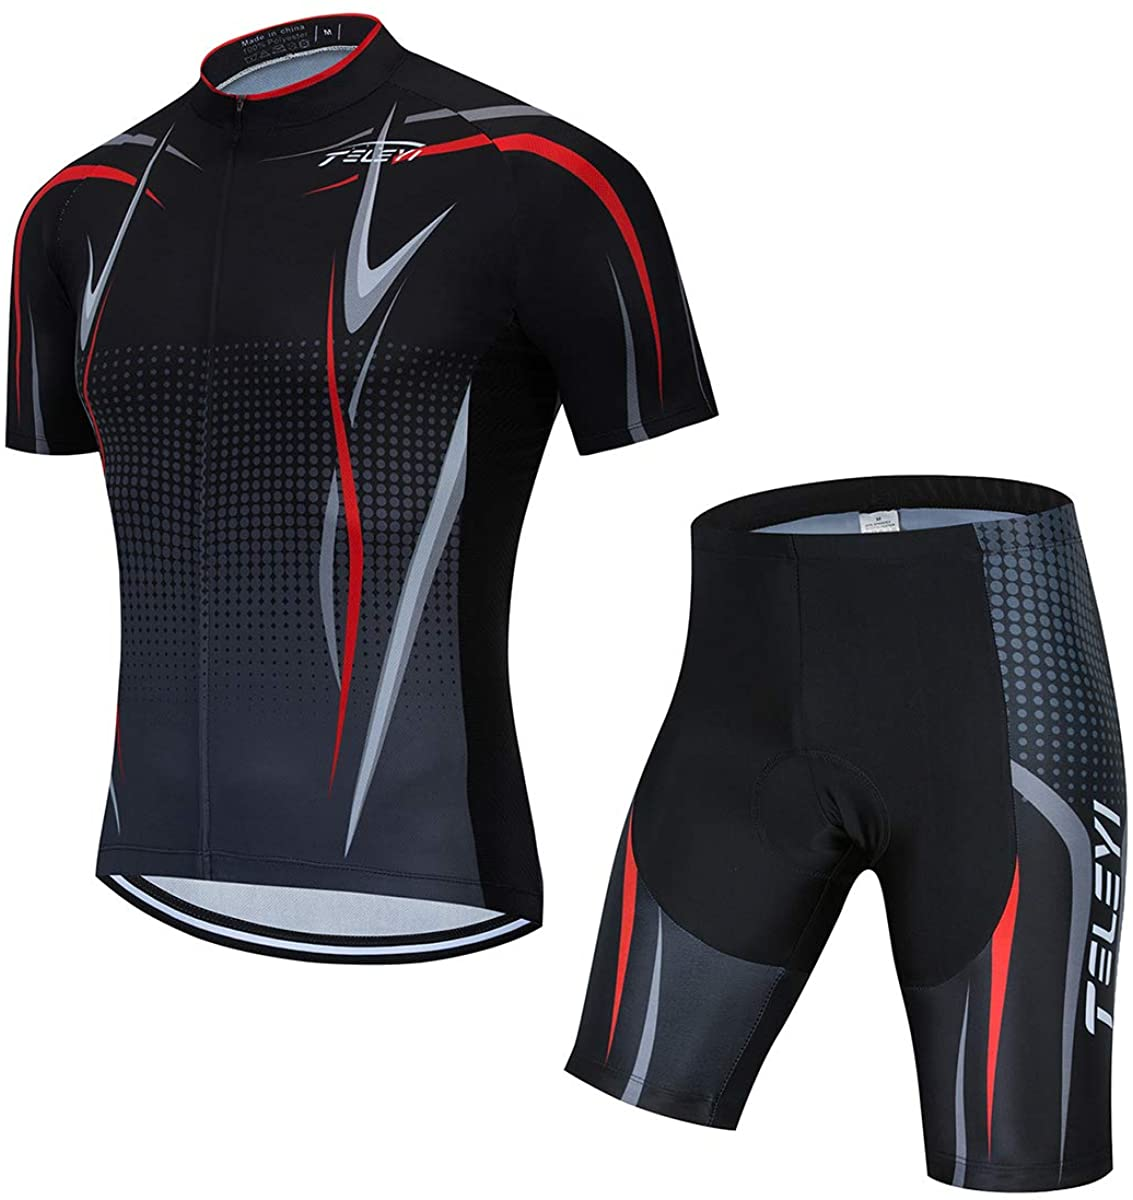 PSPORT Men's Cycling Jersey Bib Shorts Black Sets Bike Clothing Short Sleeve